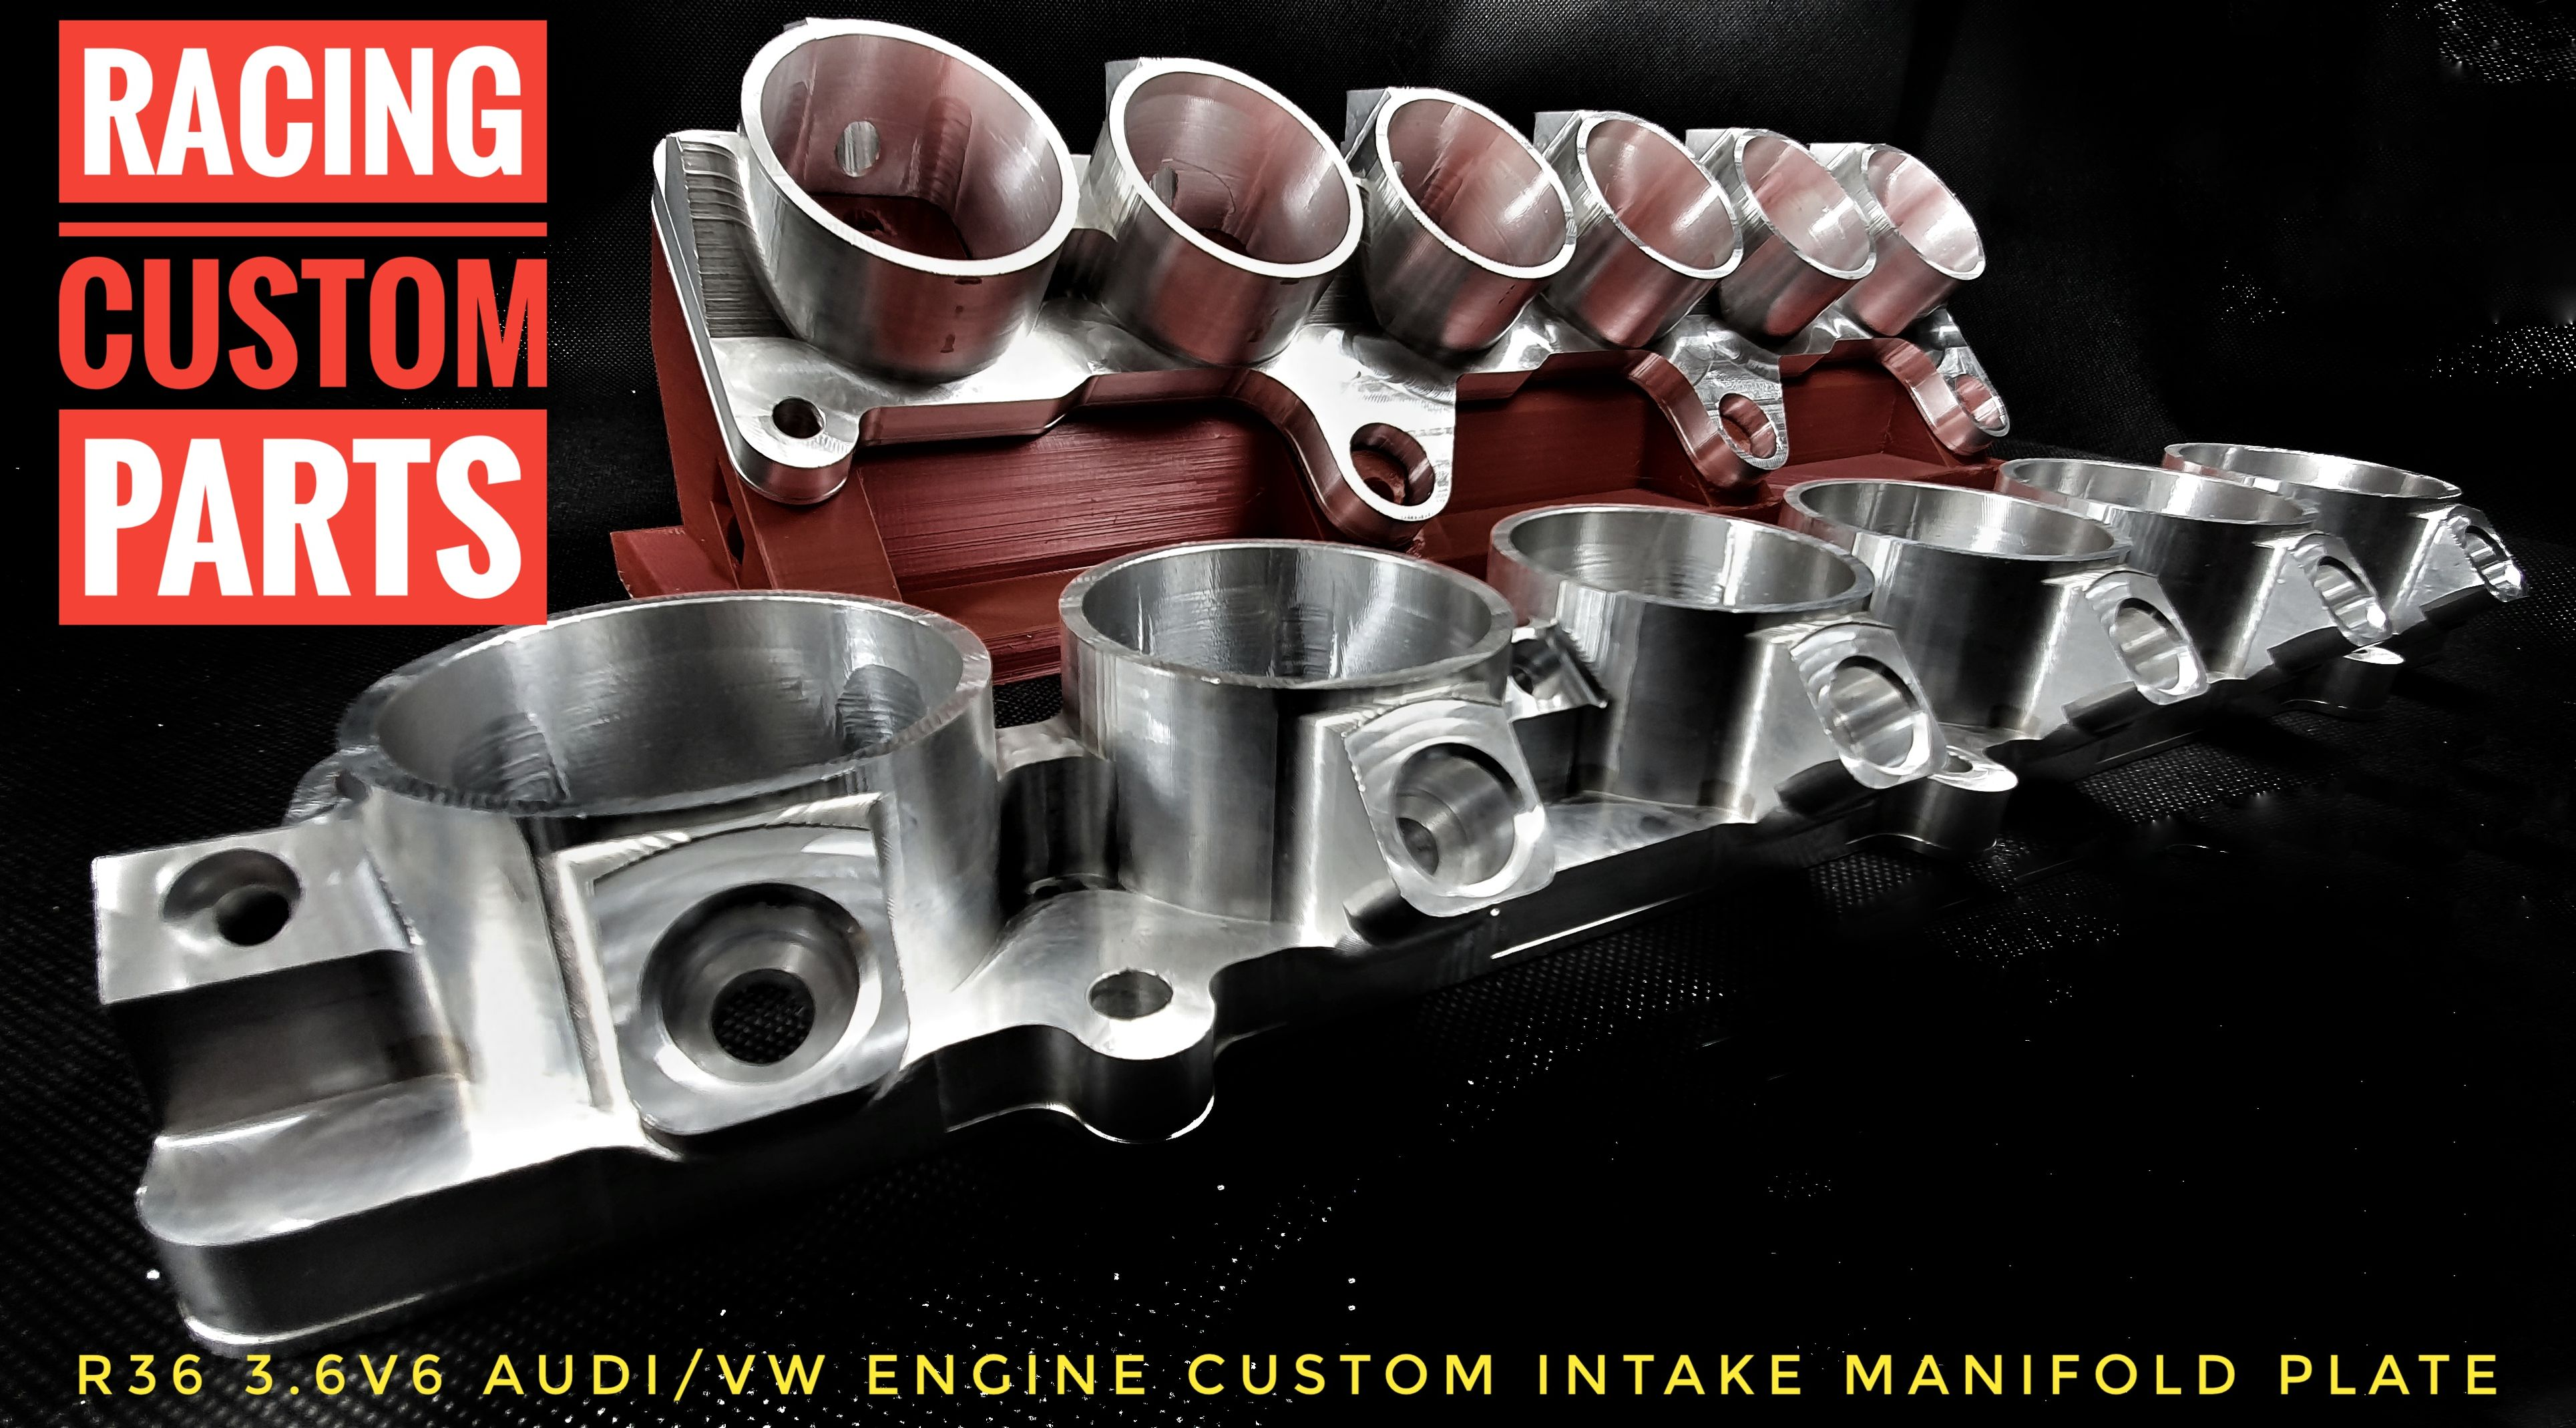 R36 3,6 v6 Audi VW engine billet cnc intake manifold plate with extra fuel injectors billet cnc racing custom parts passat r36